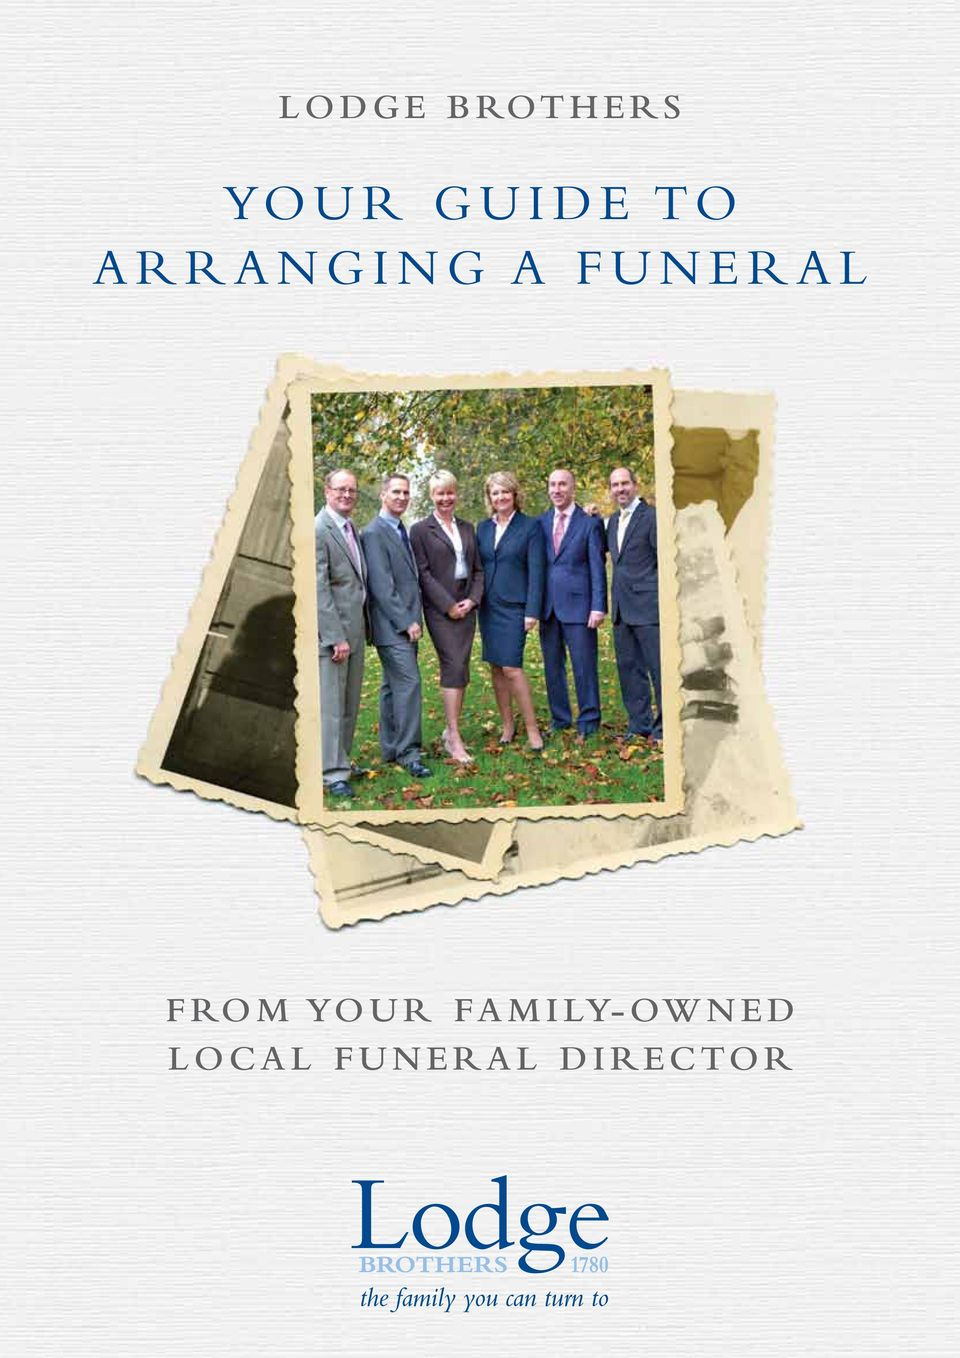 Funeral FROM YOUR